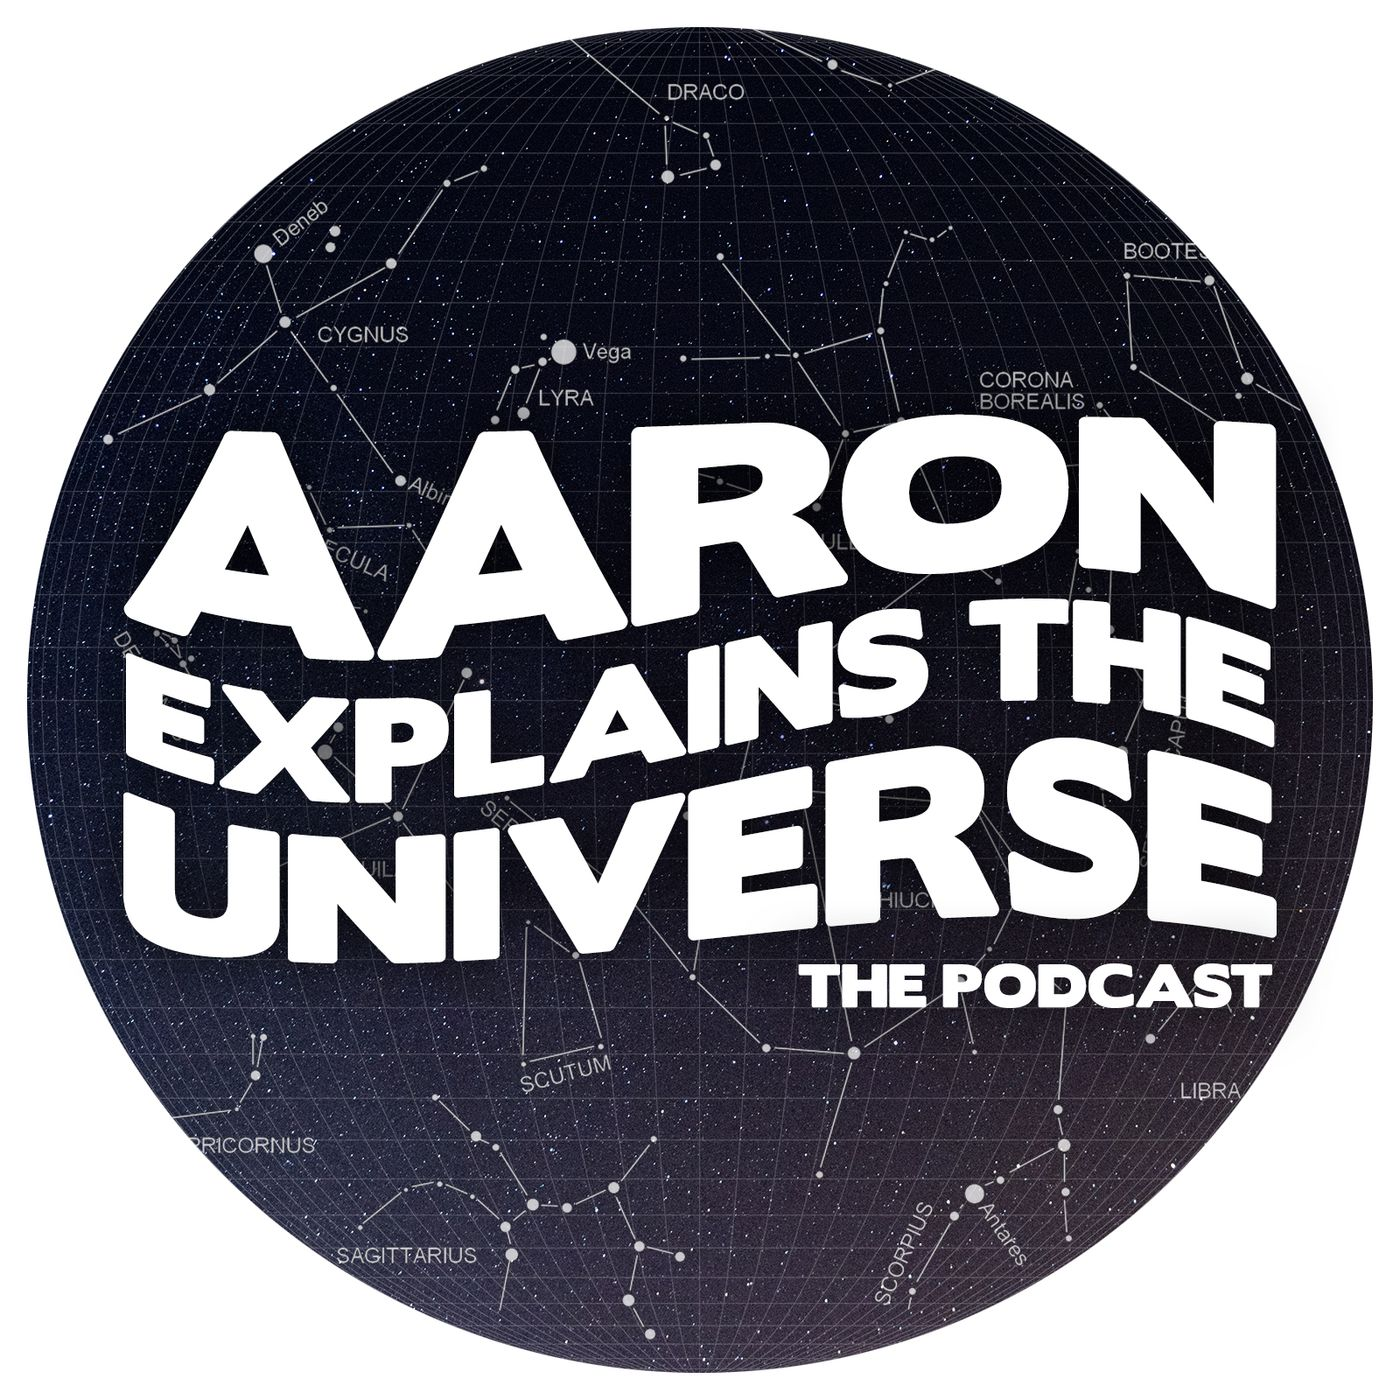 Aaron Explains the Universe